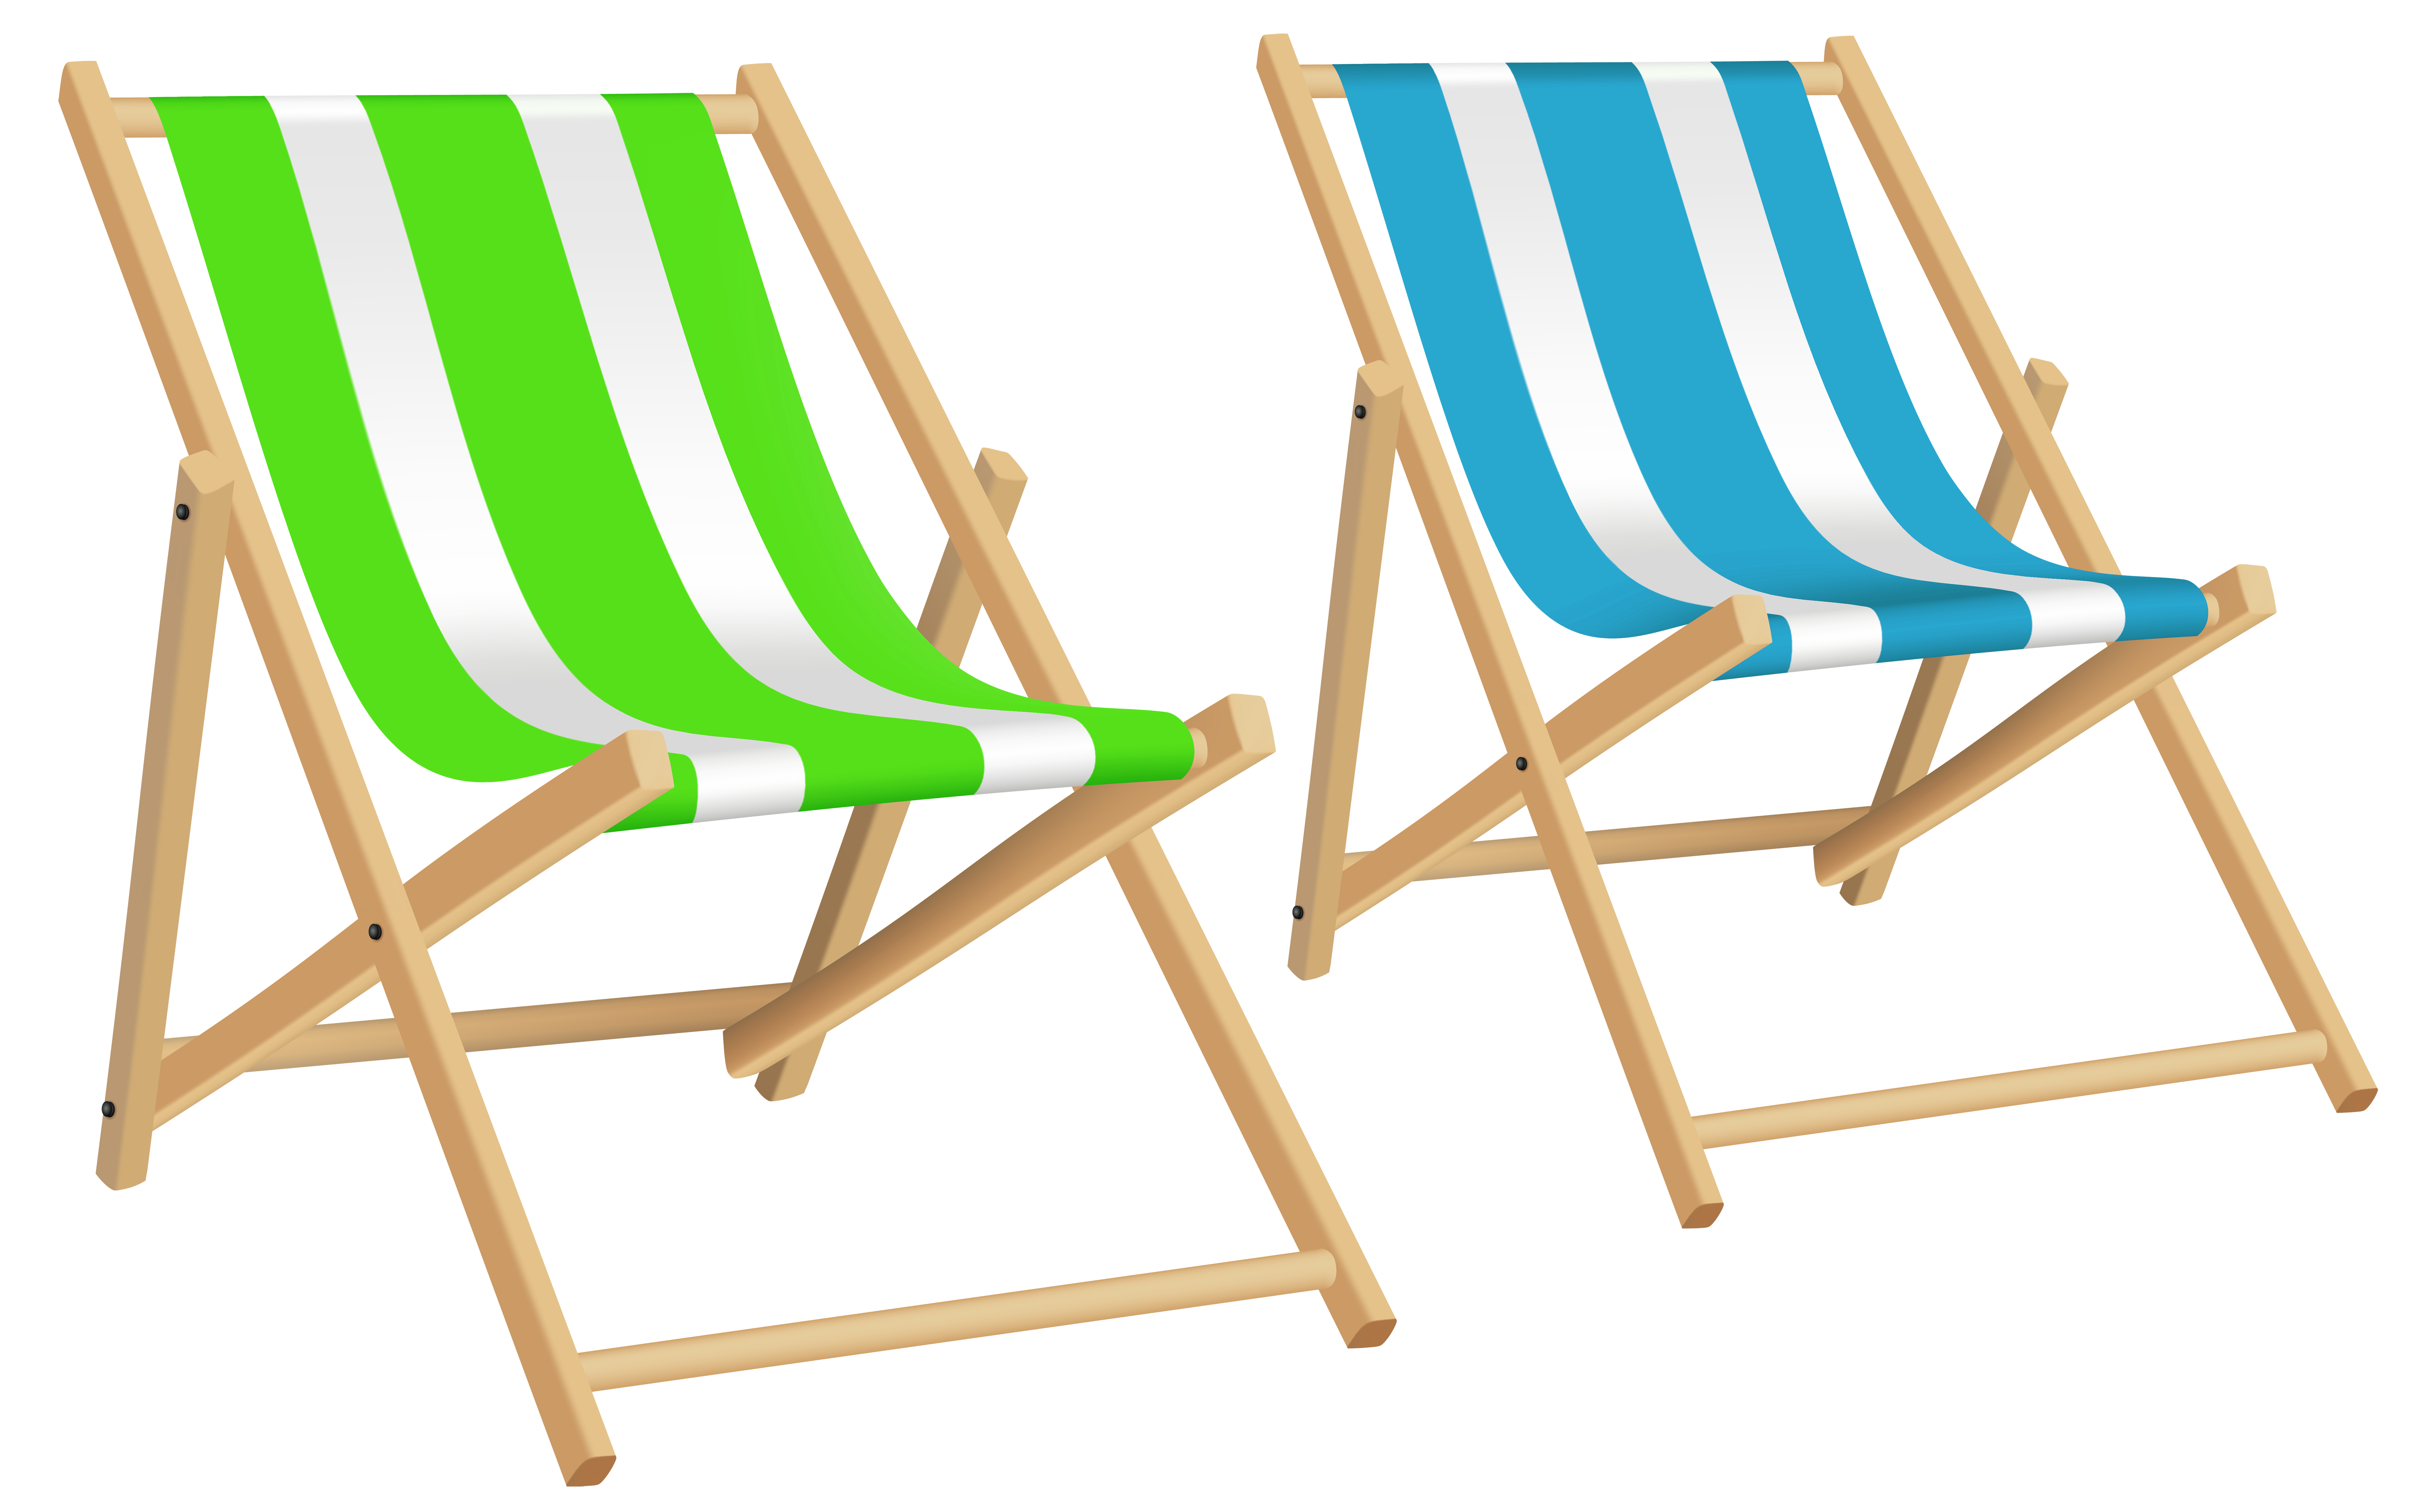 beach chair clipart at getdrawings com free for personal use beach